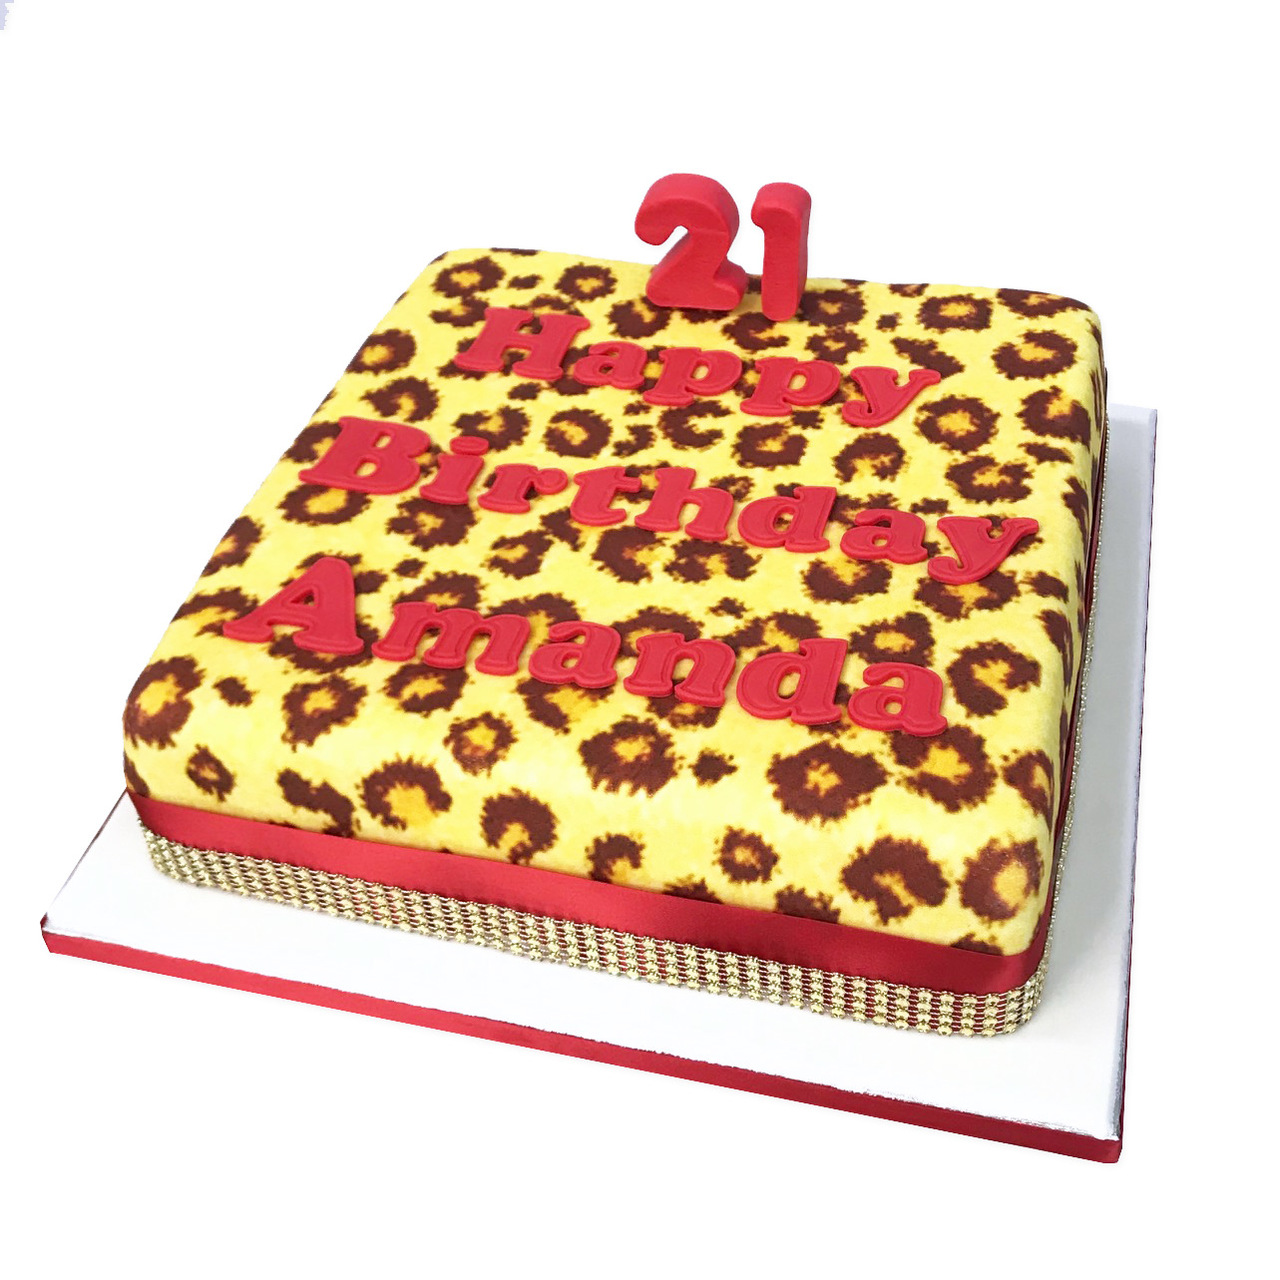 Brilliant Leopard Print Birthday Cake Childrens Birthday Cakes The Funny Birthday Cards Online Chimdamsfinfo